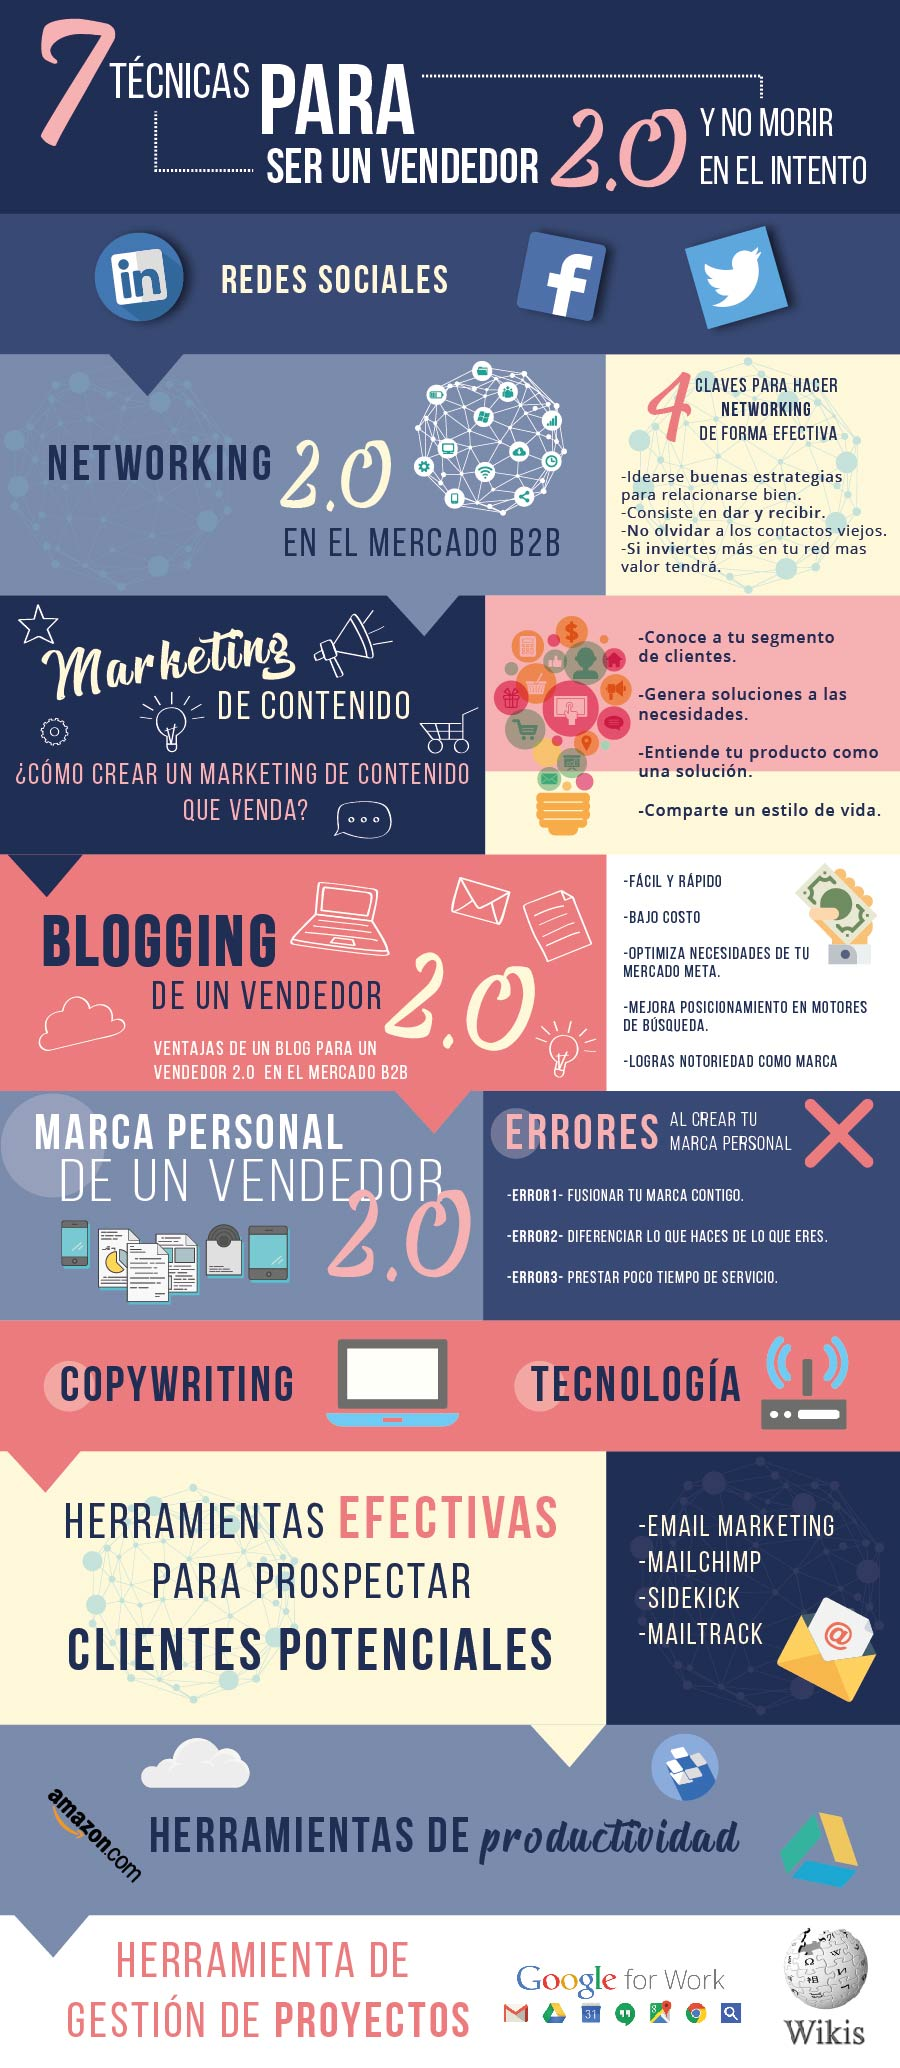 7 tecnicas para ser un vendedor 2.0 marketing B2B